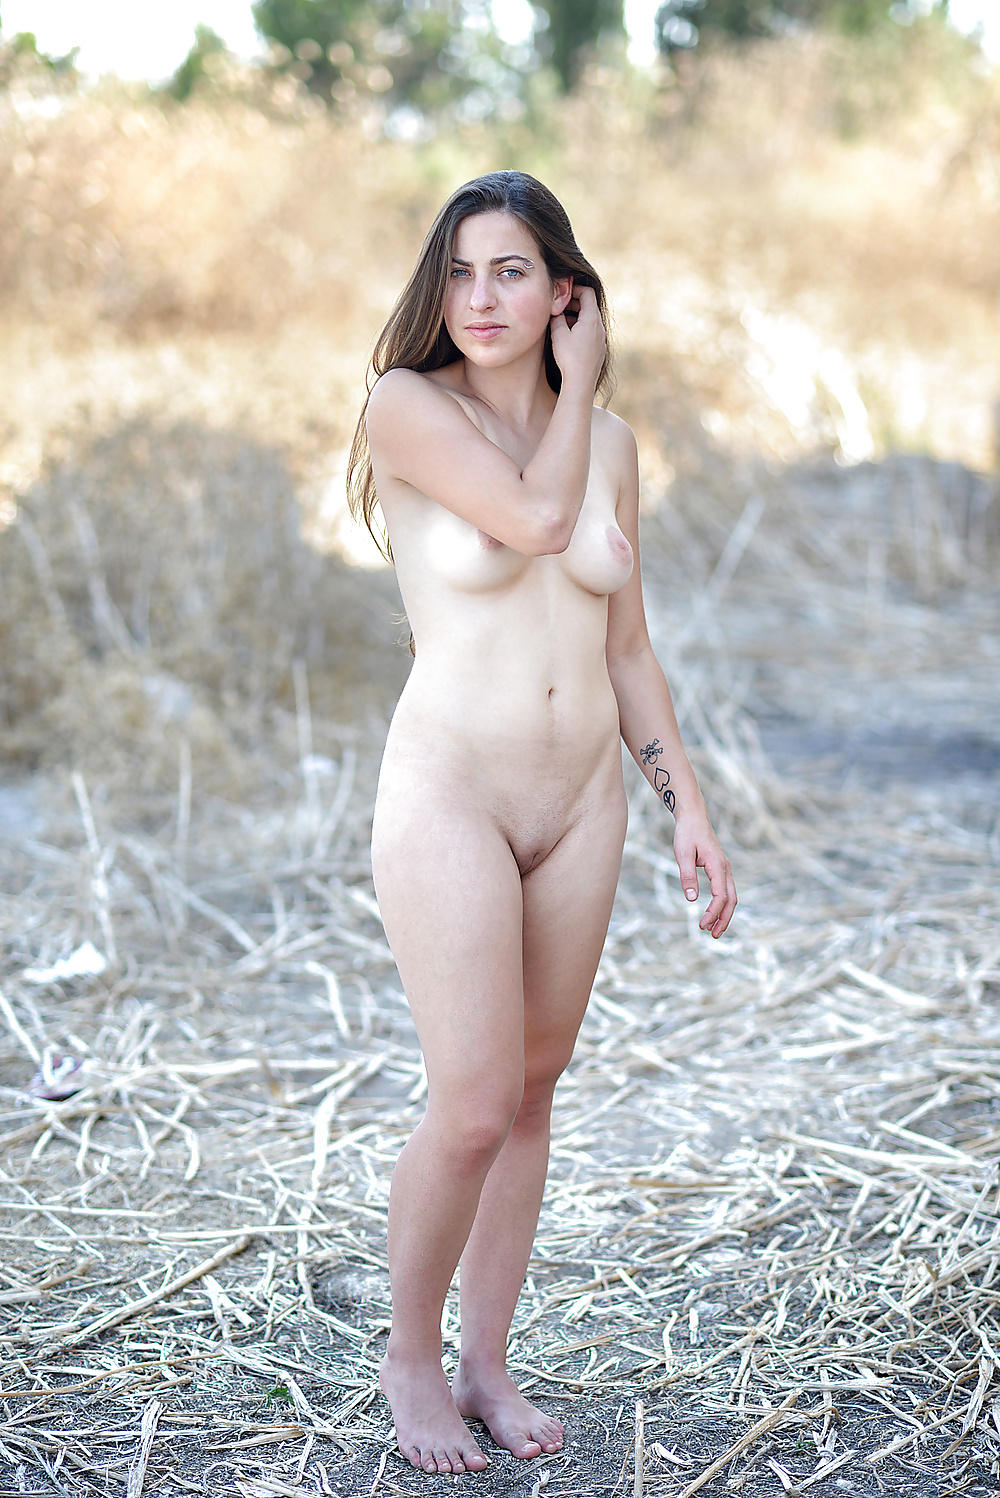 jewish-girl-nude-picture